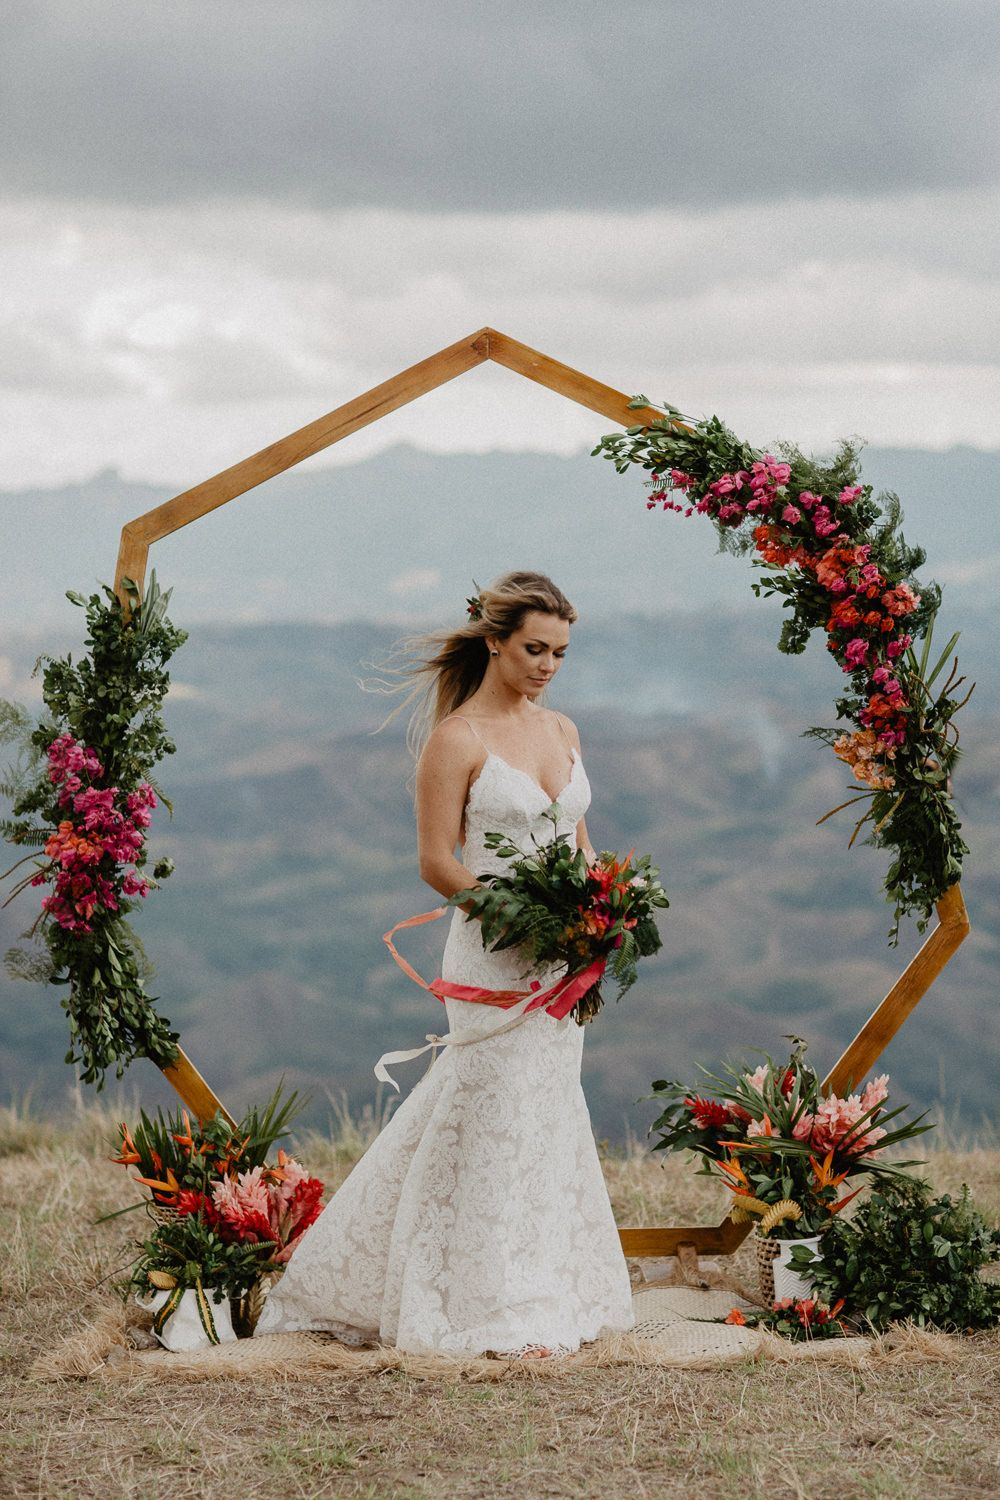 Heptagon arch, hexagon arch, geometric wedding inspiration